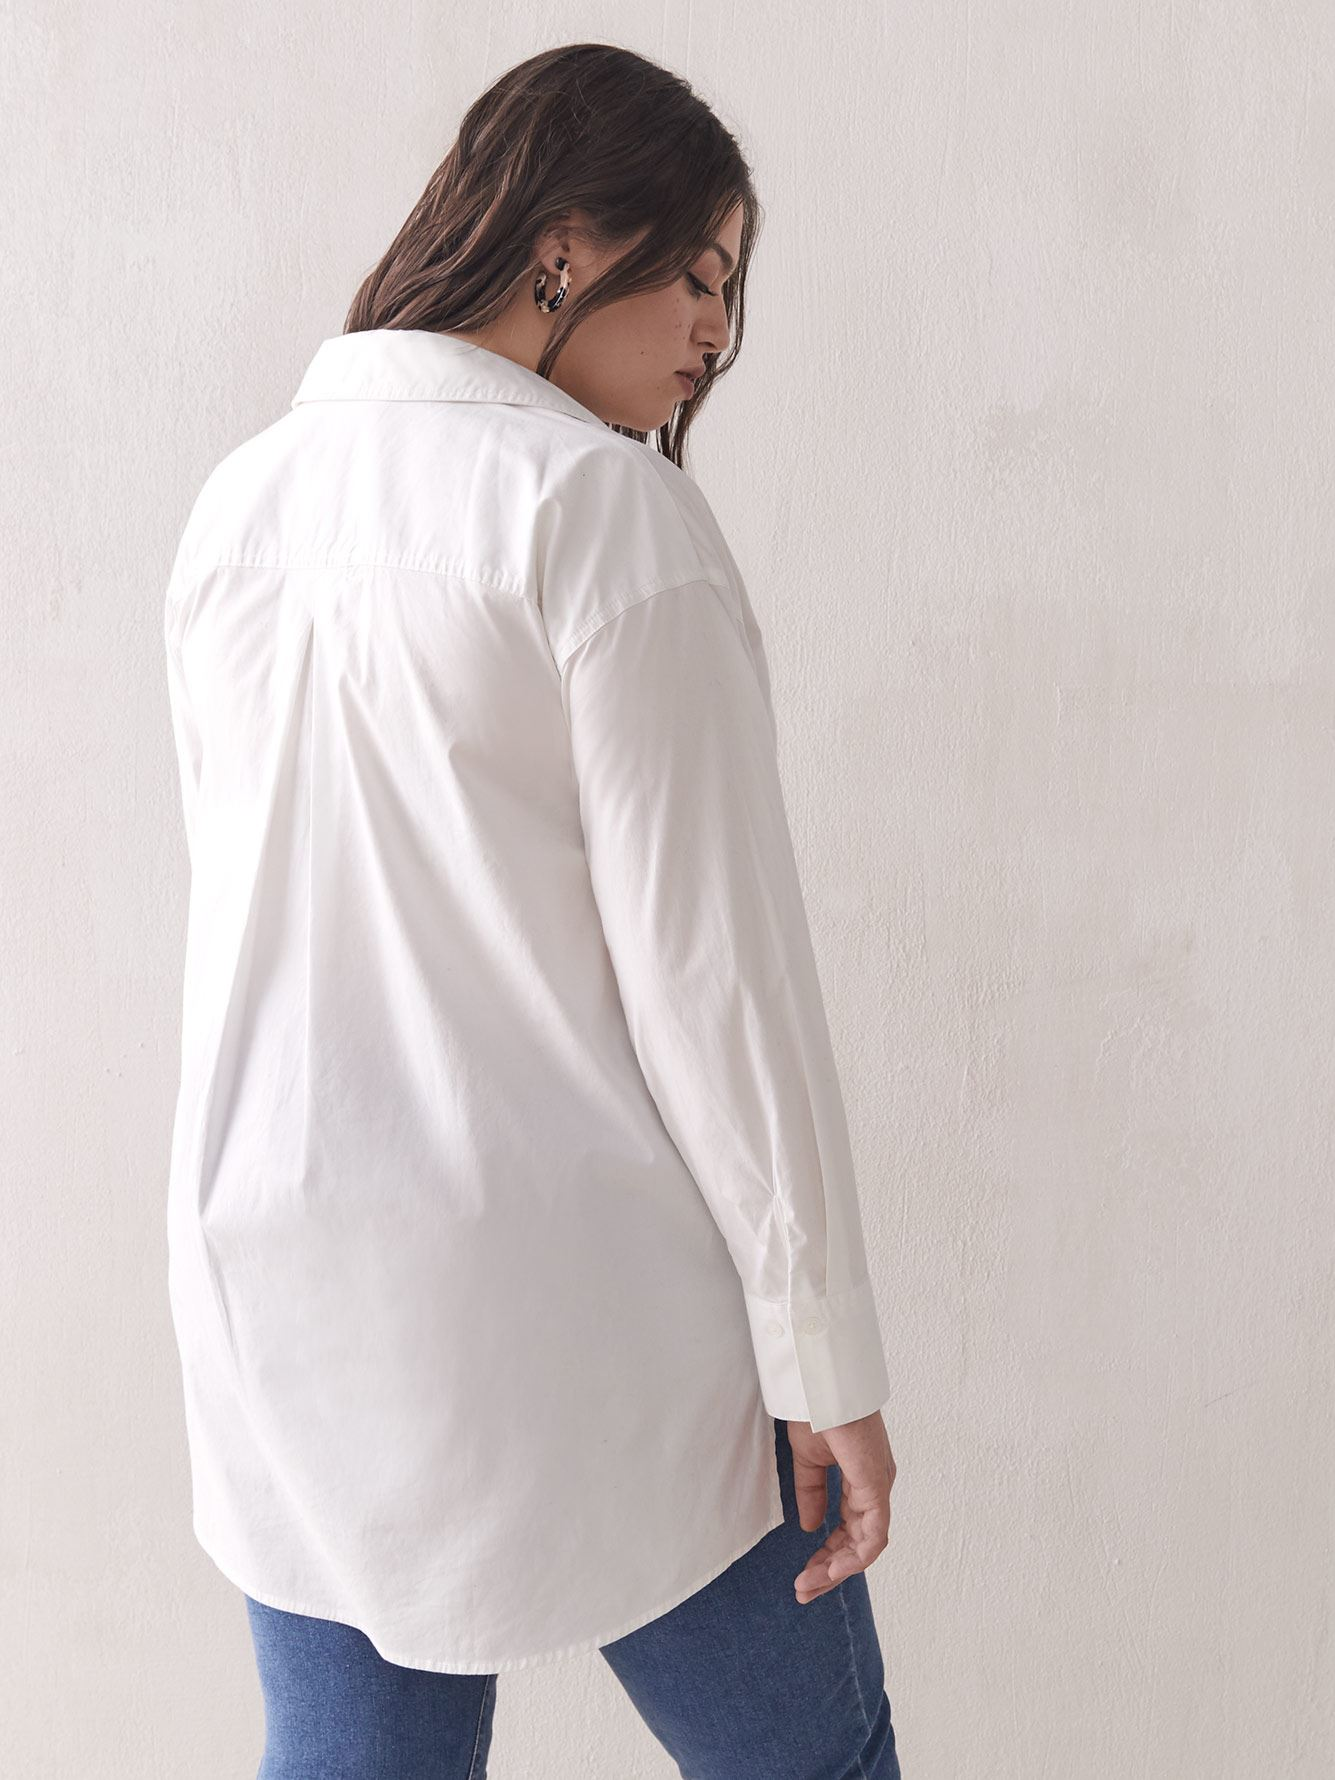 Oversized Tunic Shirt Blouse - Addition Elle